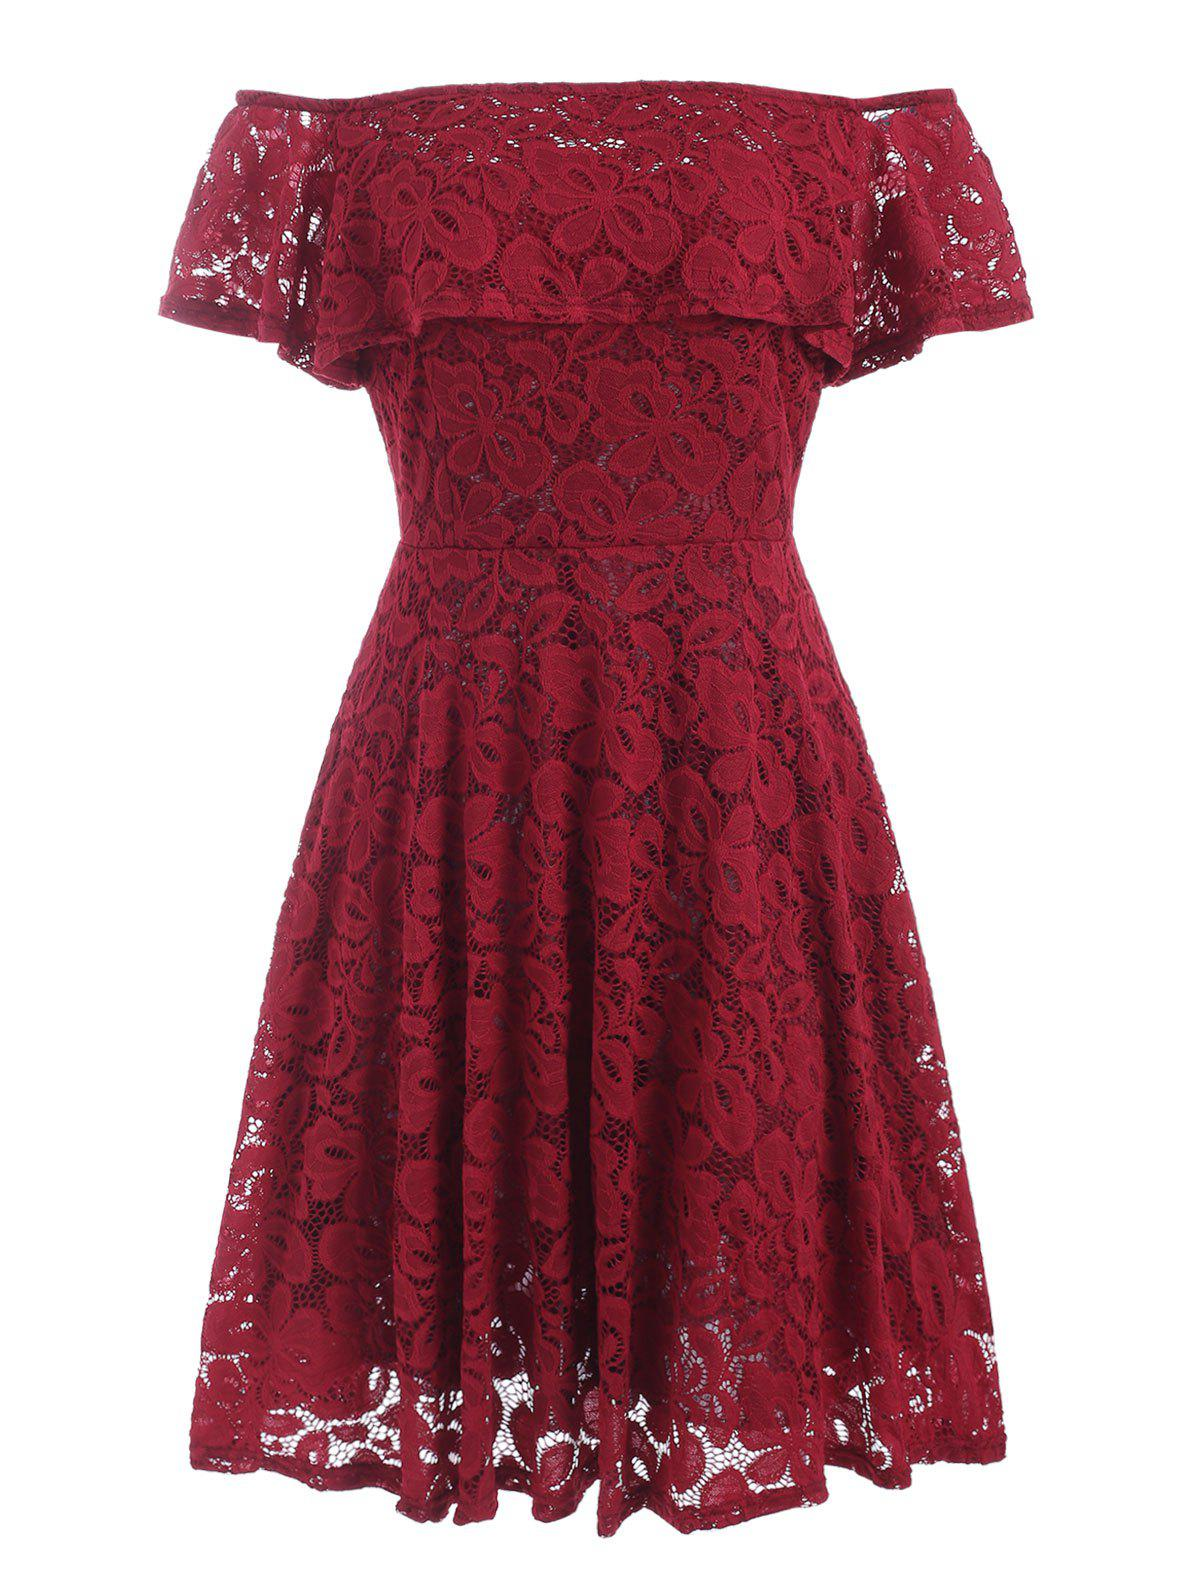 Off Shoulder Ruffles Lace Dress - RED WINE 2XL